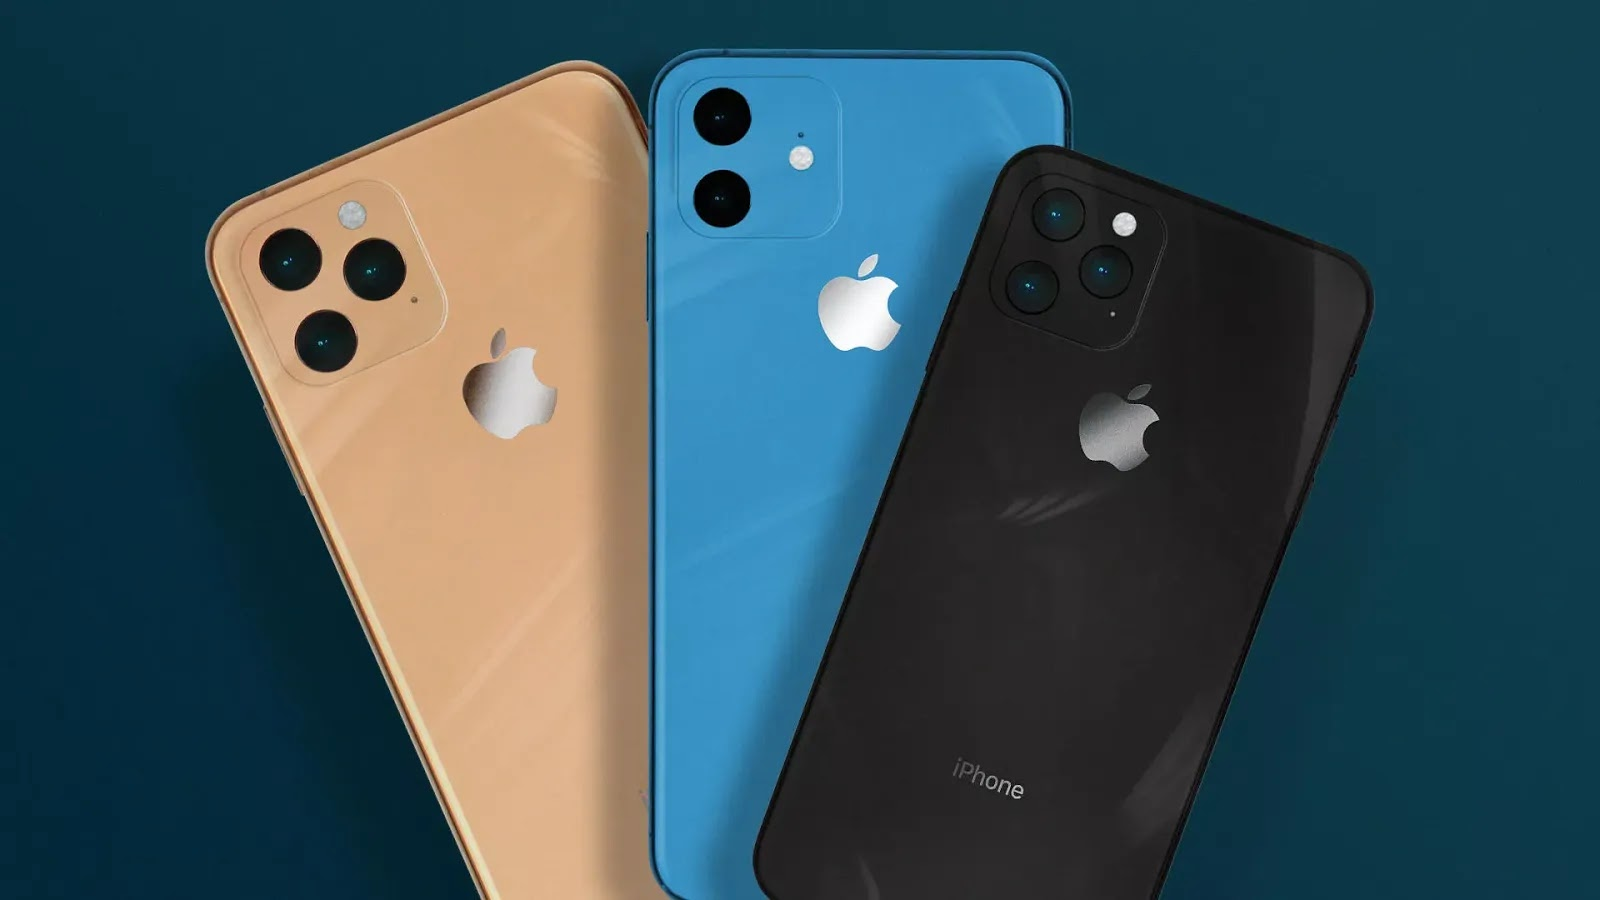 Unveiling of iPhone 11 to be streamed live on YouTube: Embedded on droidvilla